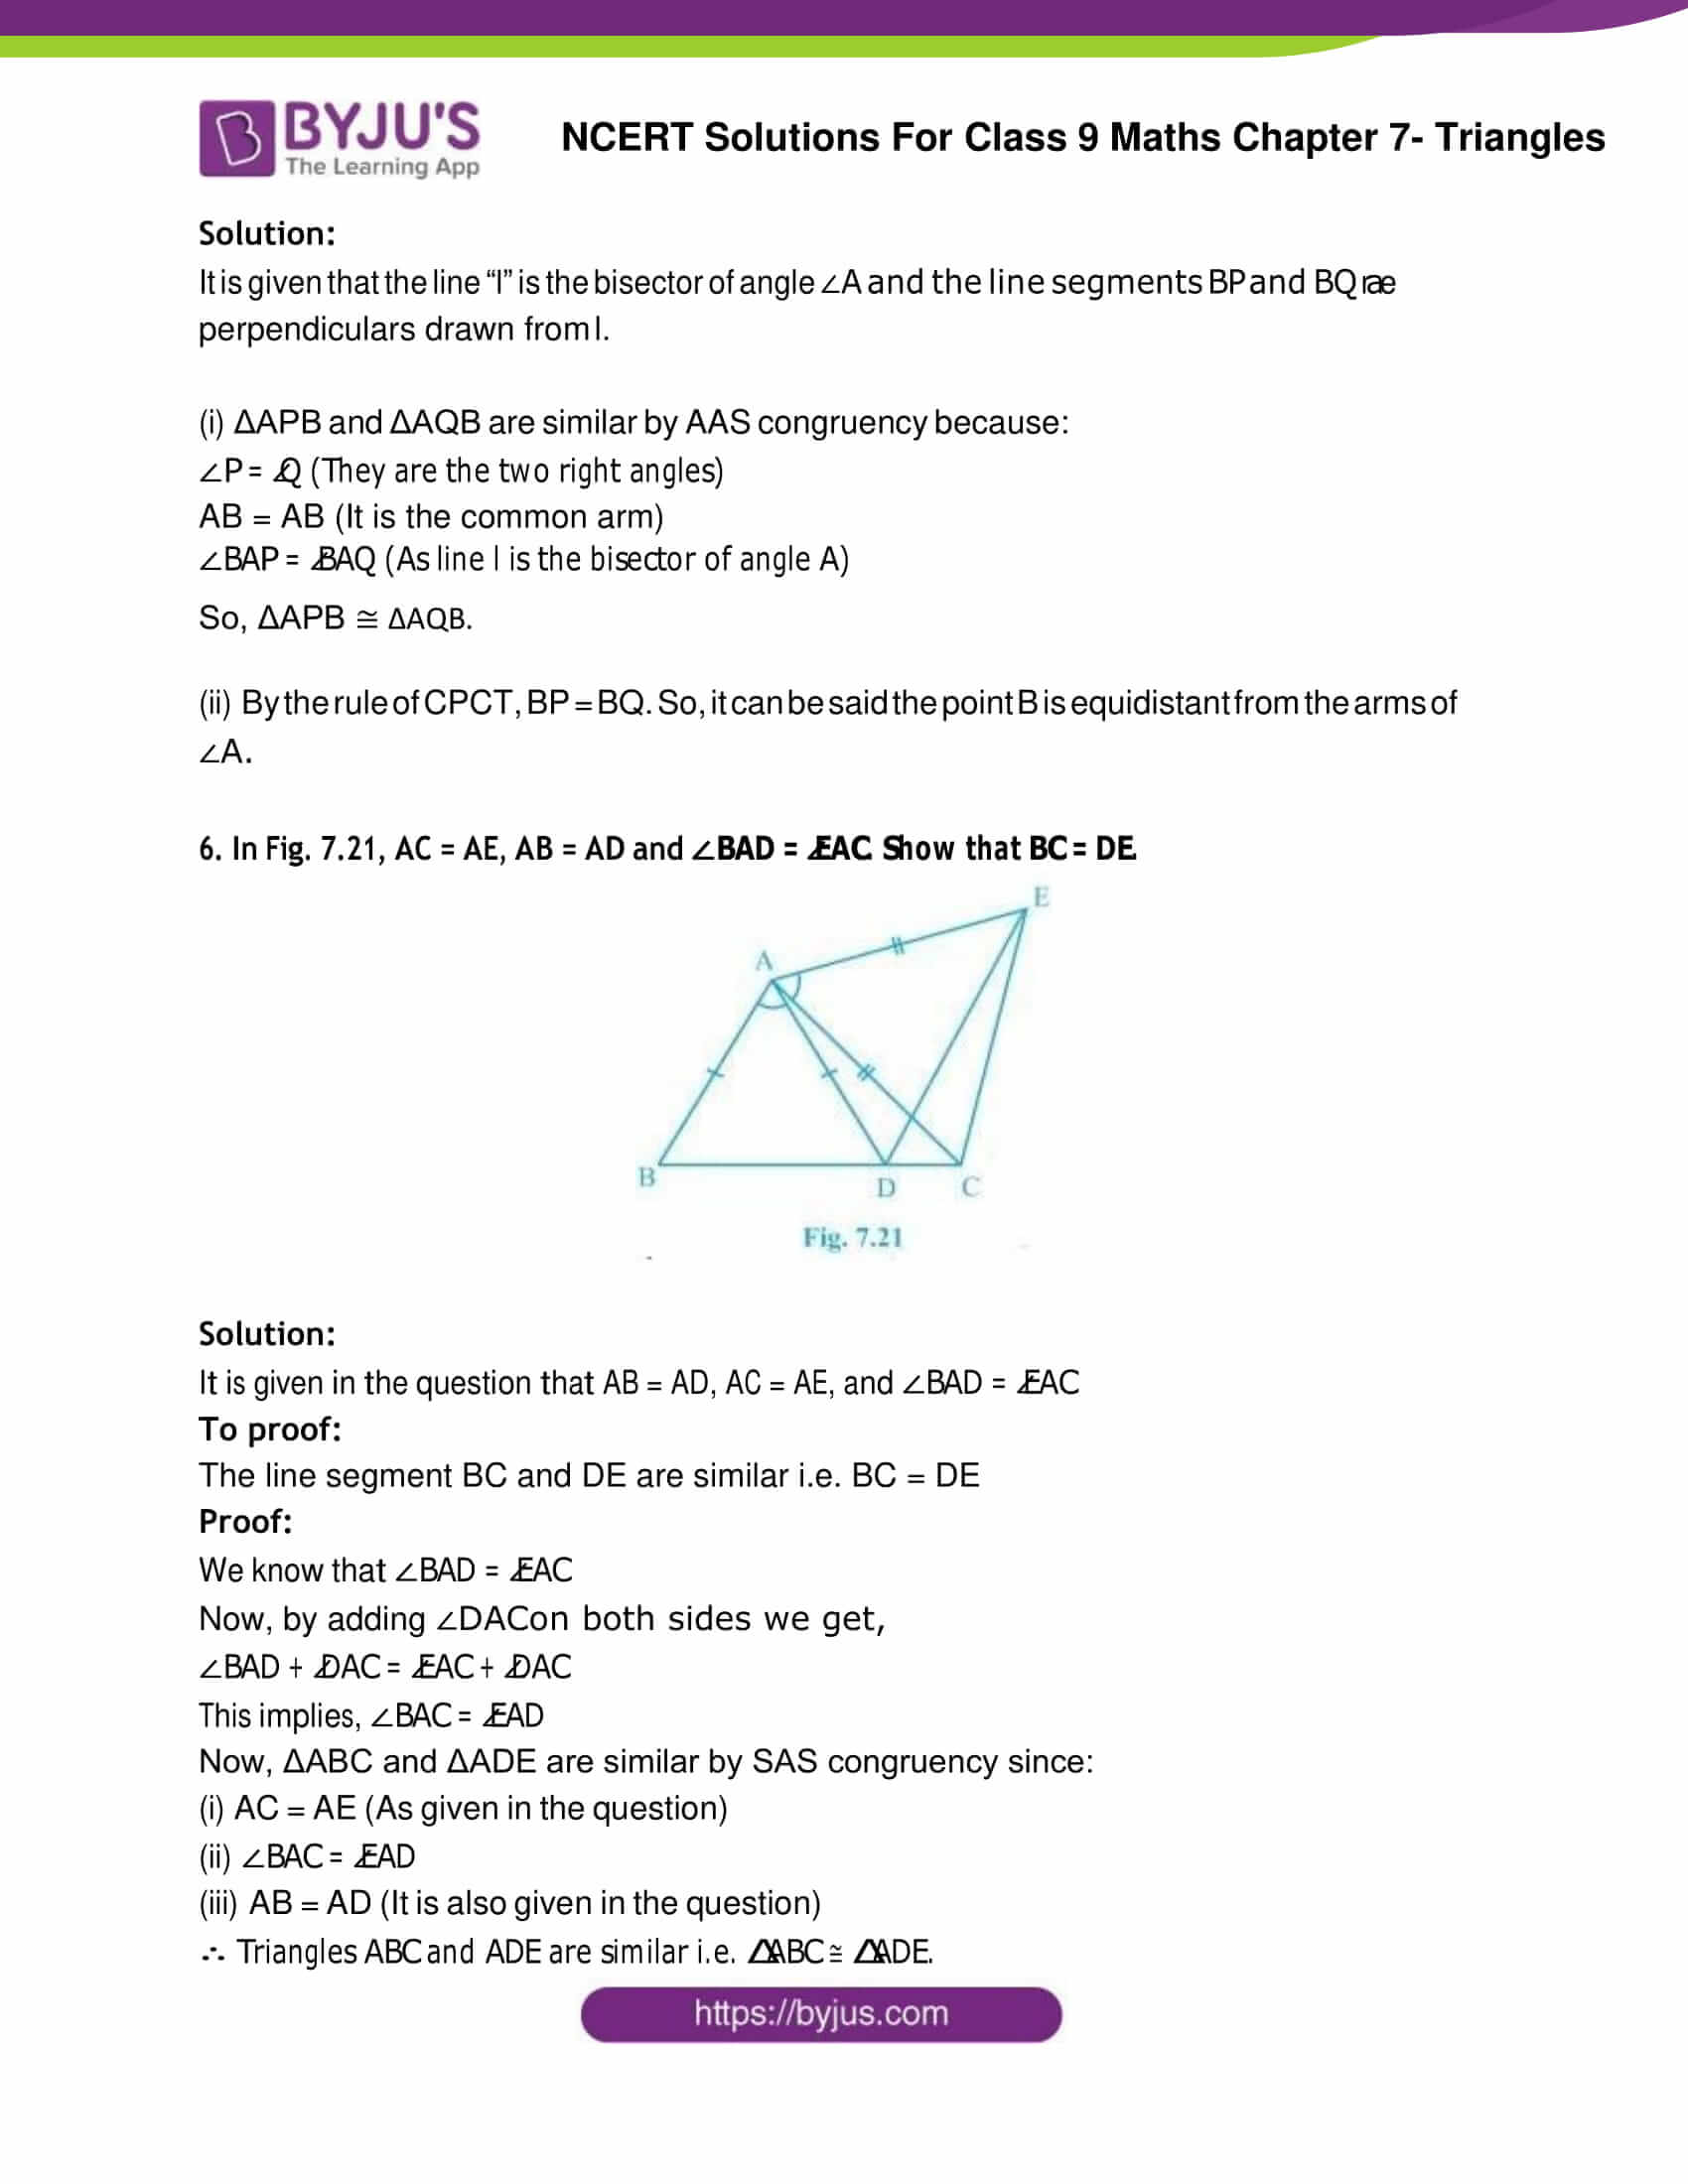 NCERT Solution Class 9 Maths Chapter 7 Triangles Exercise 7.1 Part 4